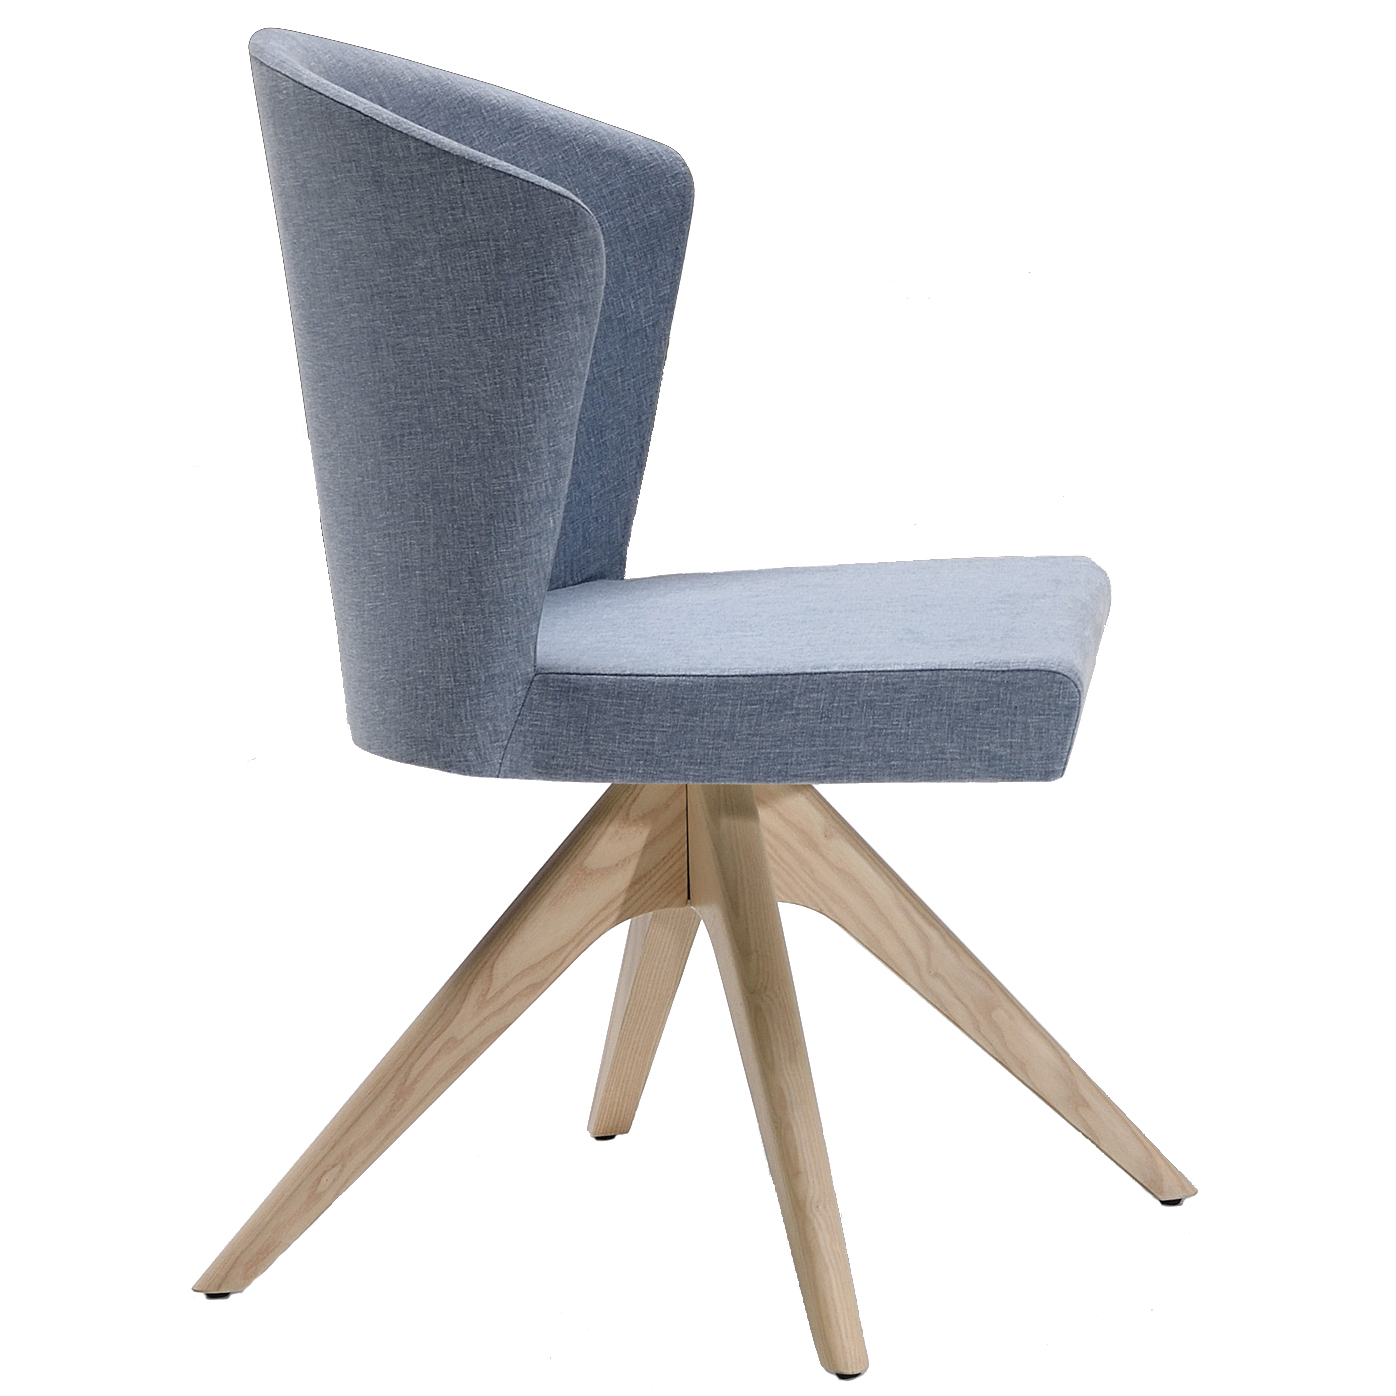 Blue side chair with wooden base